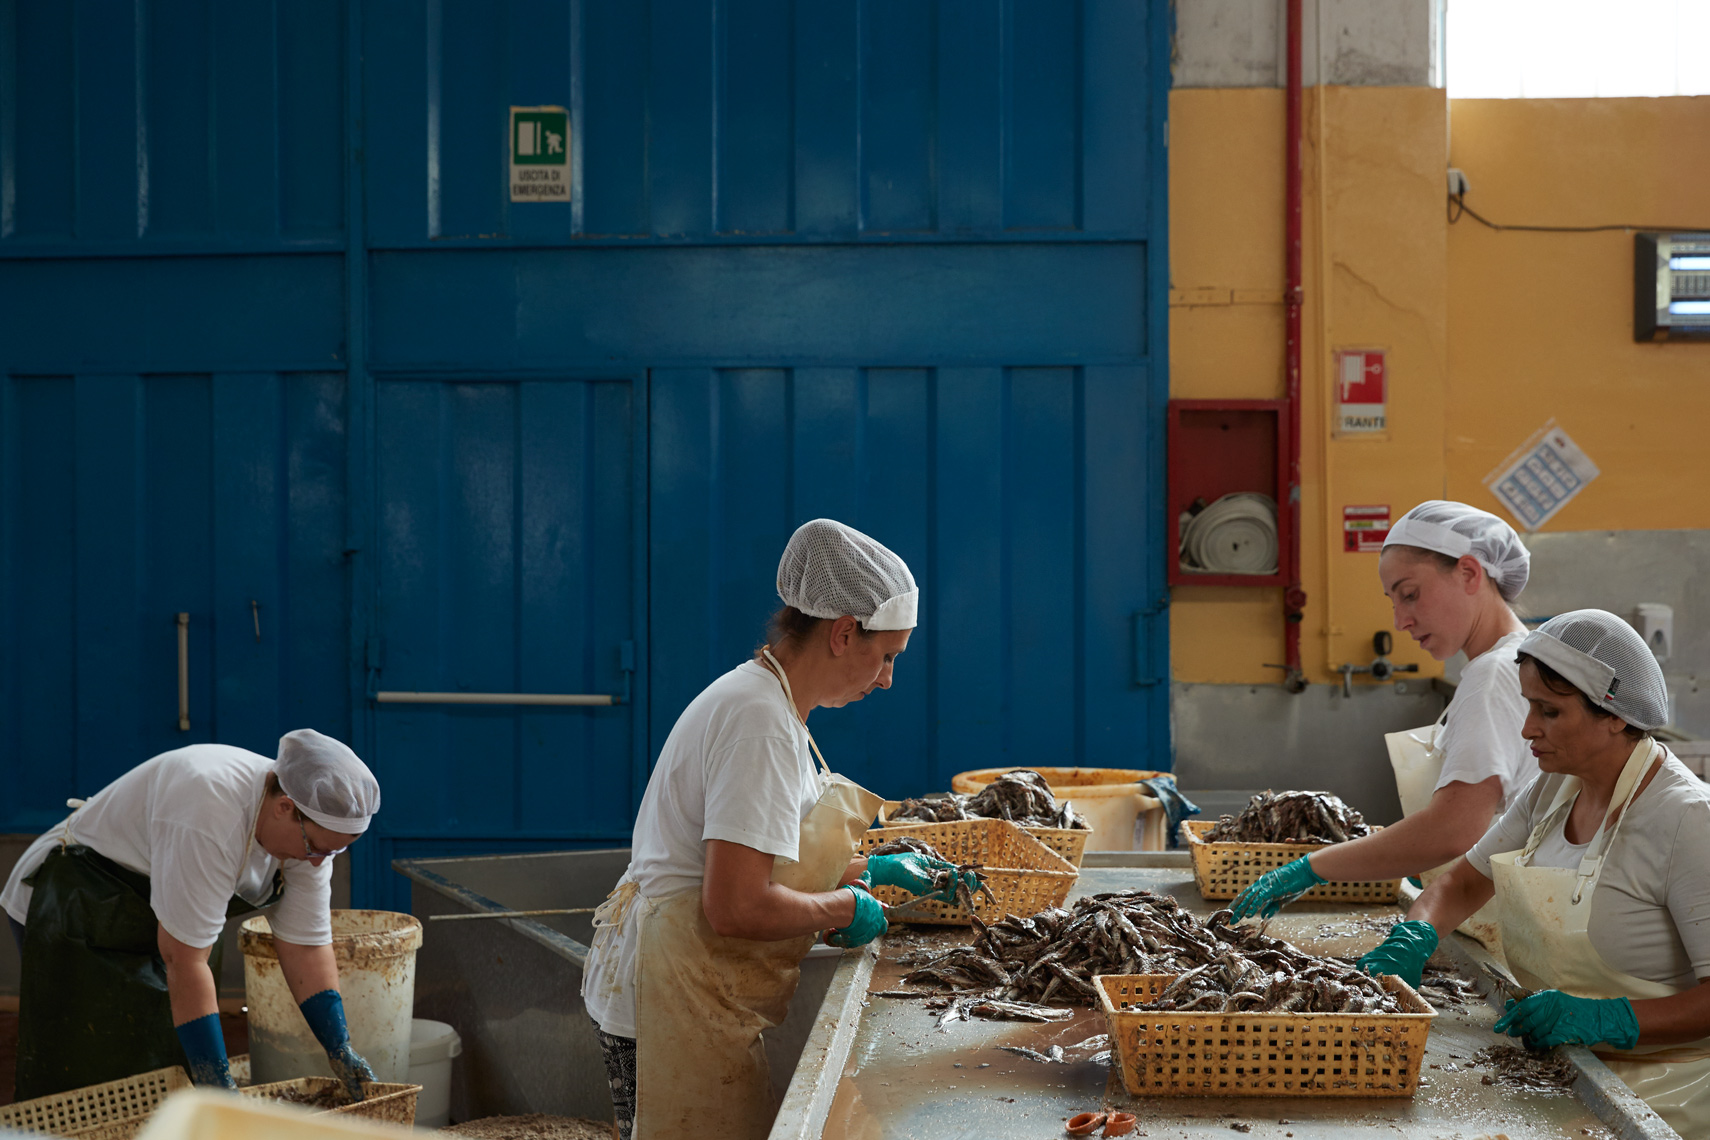 Autentico: The Anchovy Workers